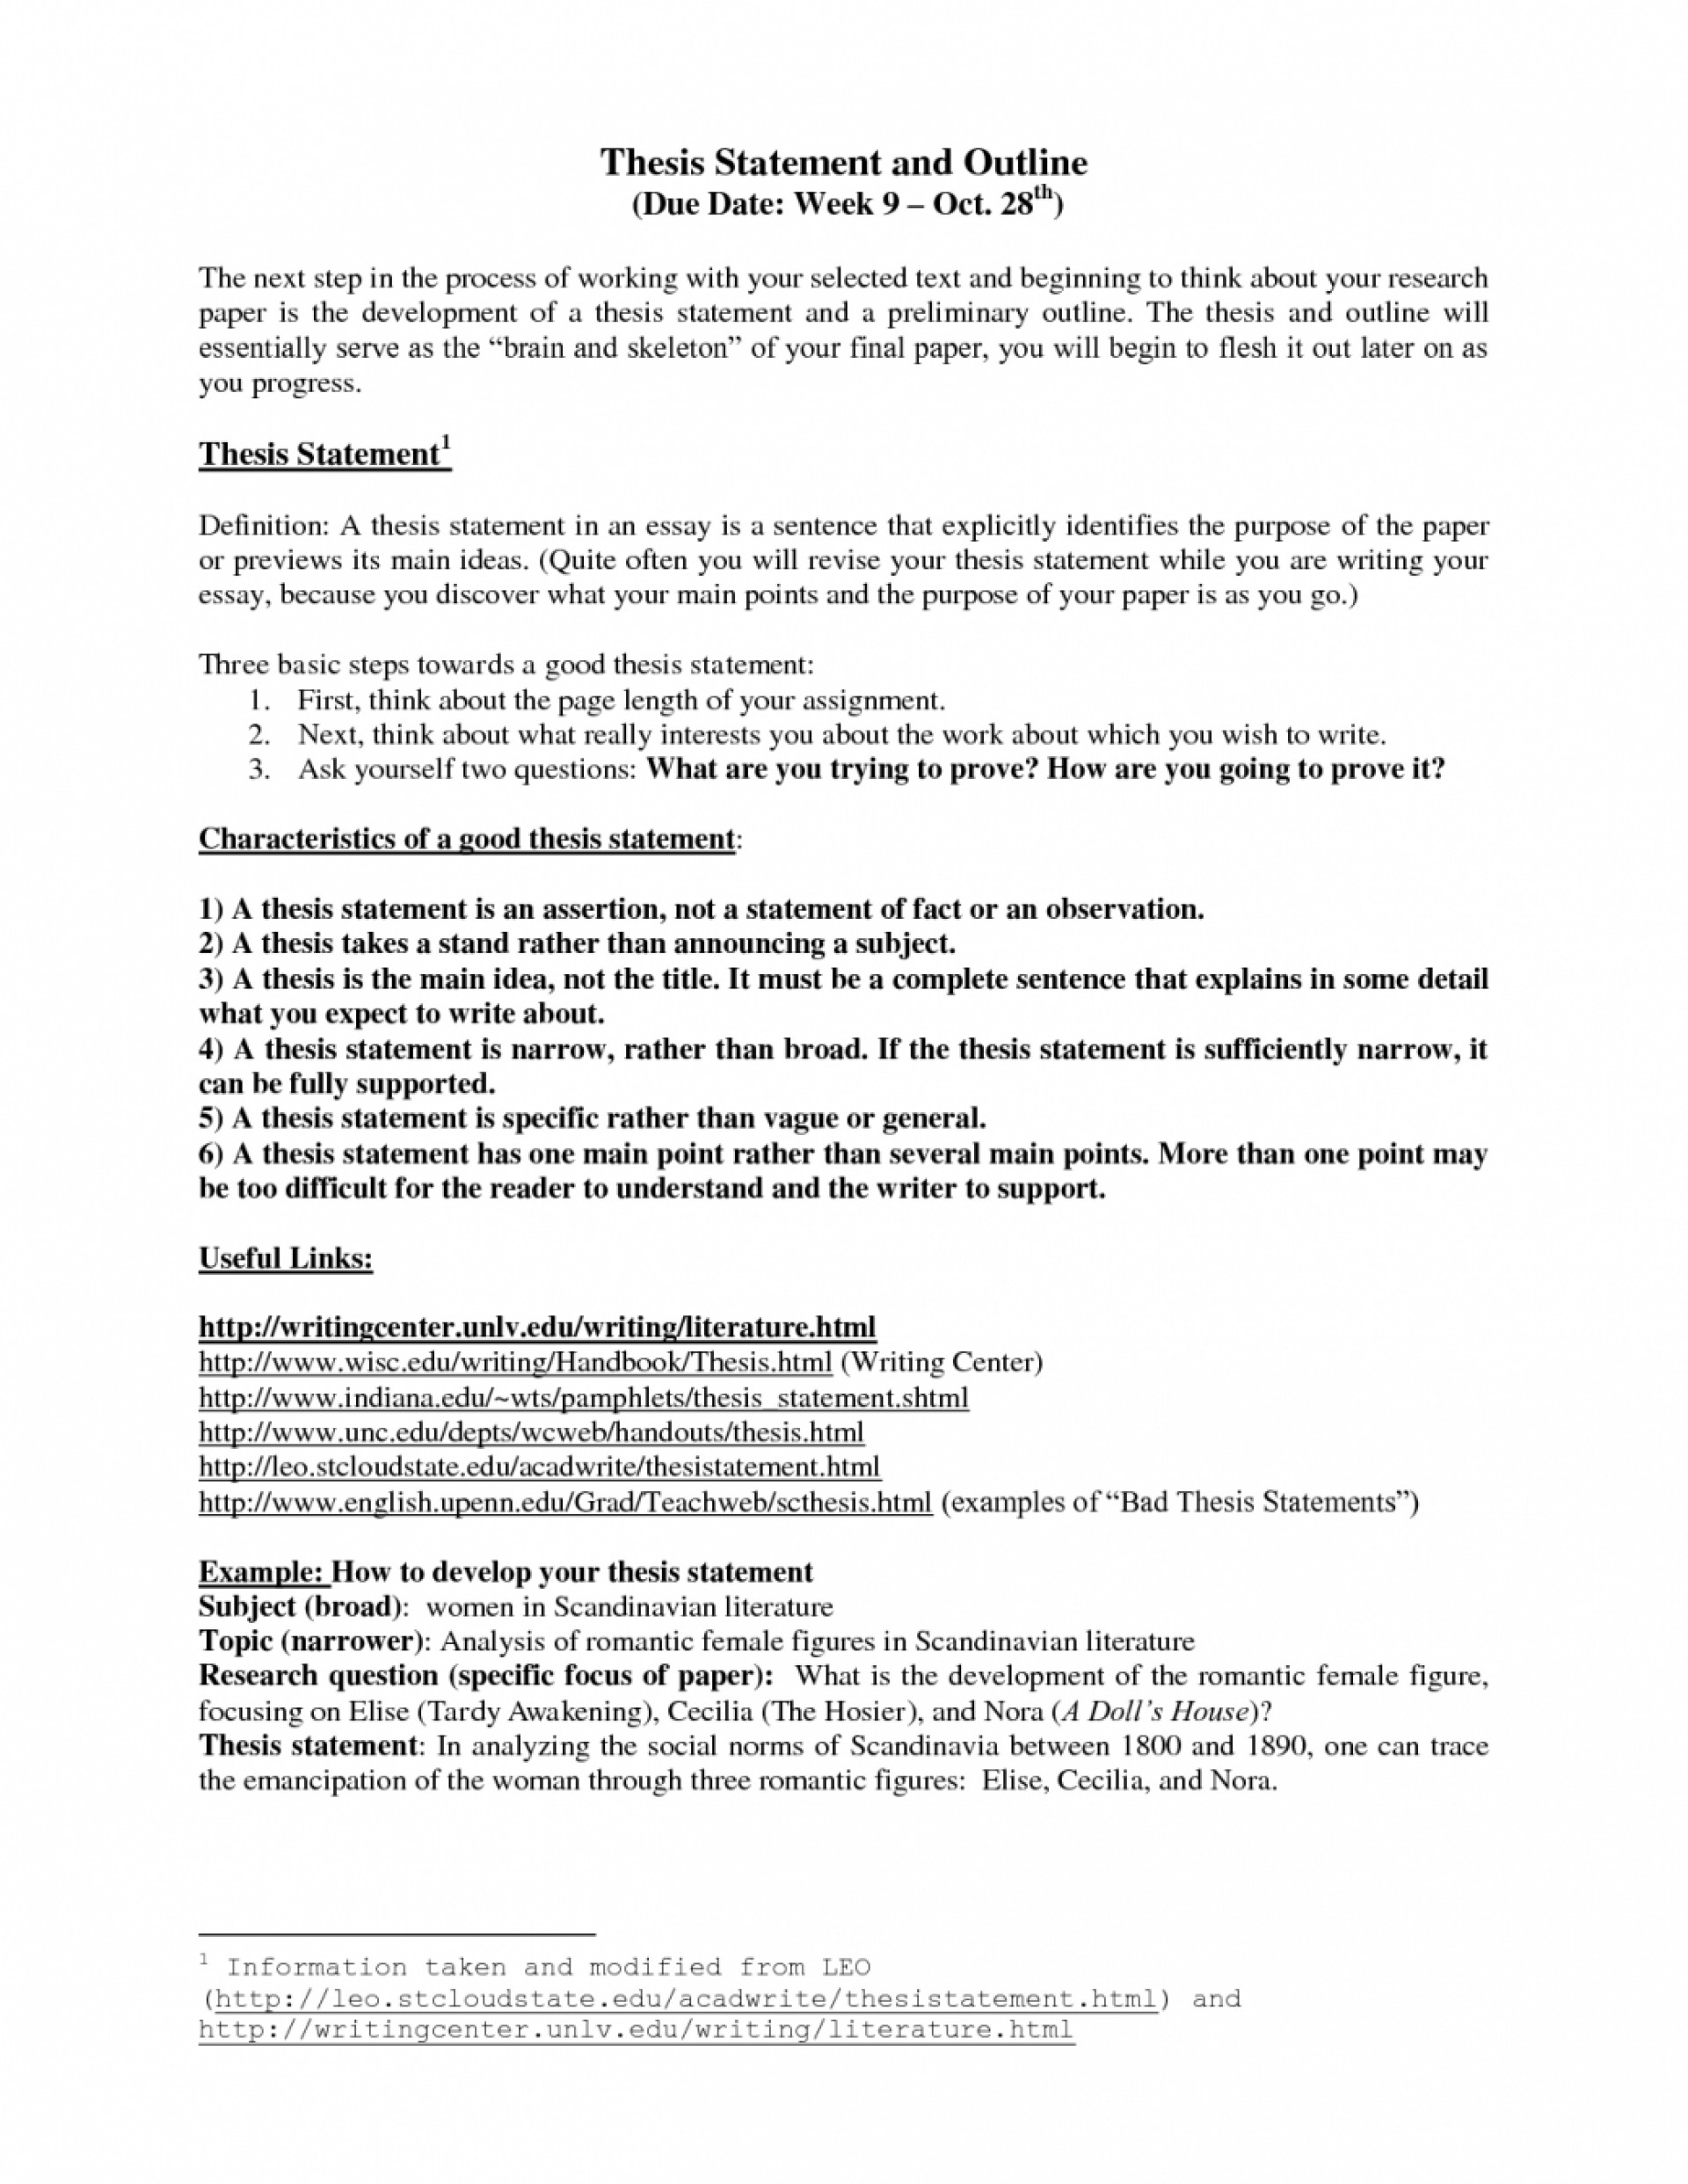 024 Good Topic For College English Research Paper Stunning Essay Thesist Example And Outline Template Wx8nmdez Of With What Is Formidable 1920